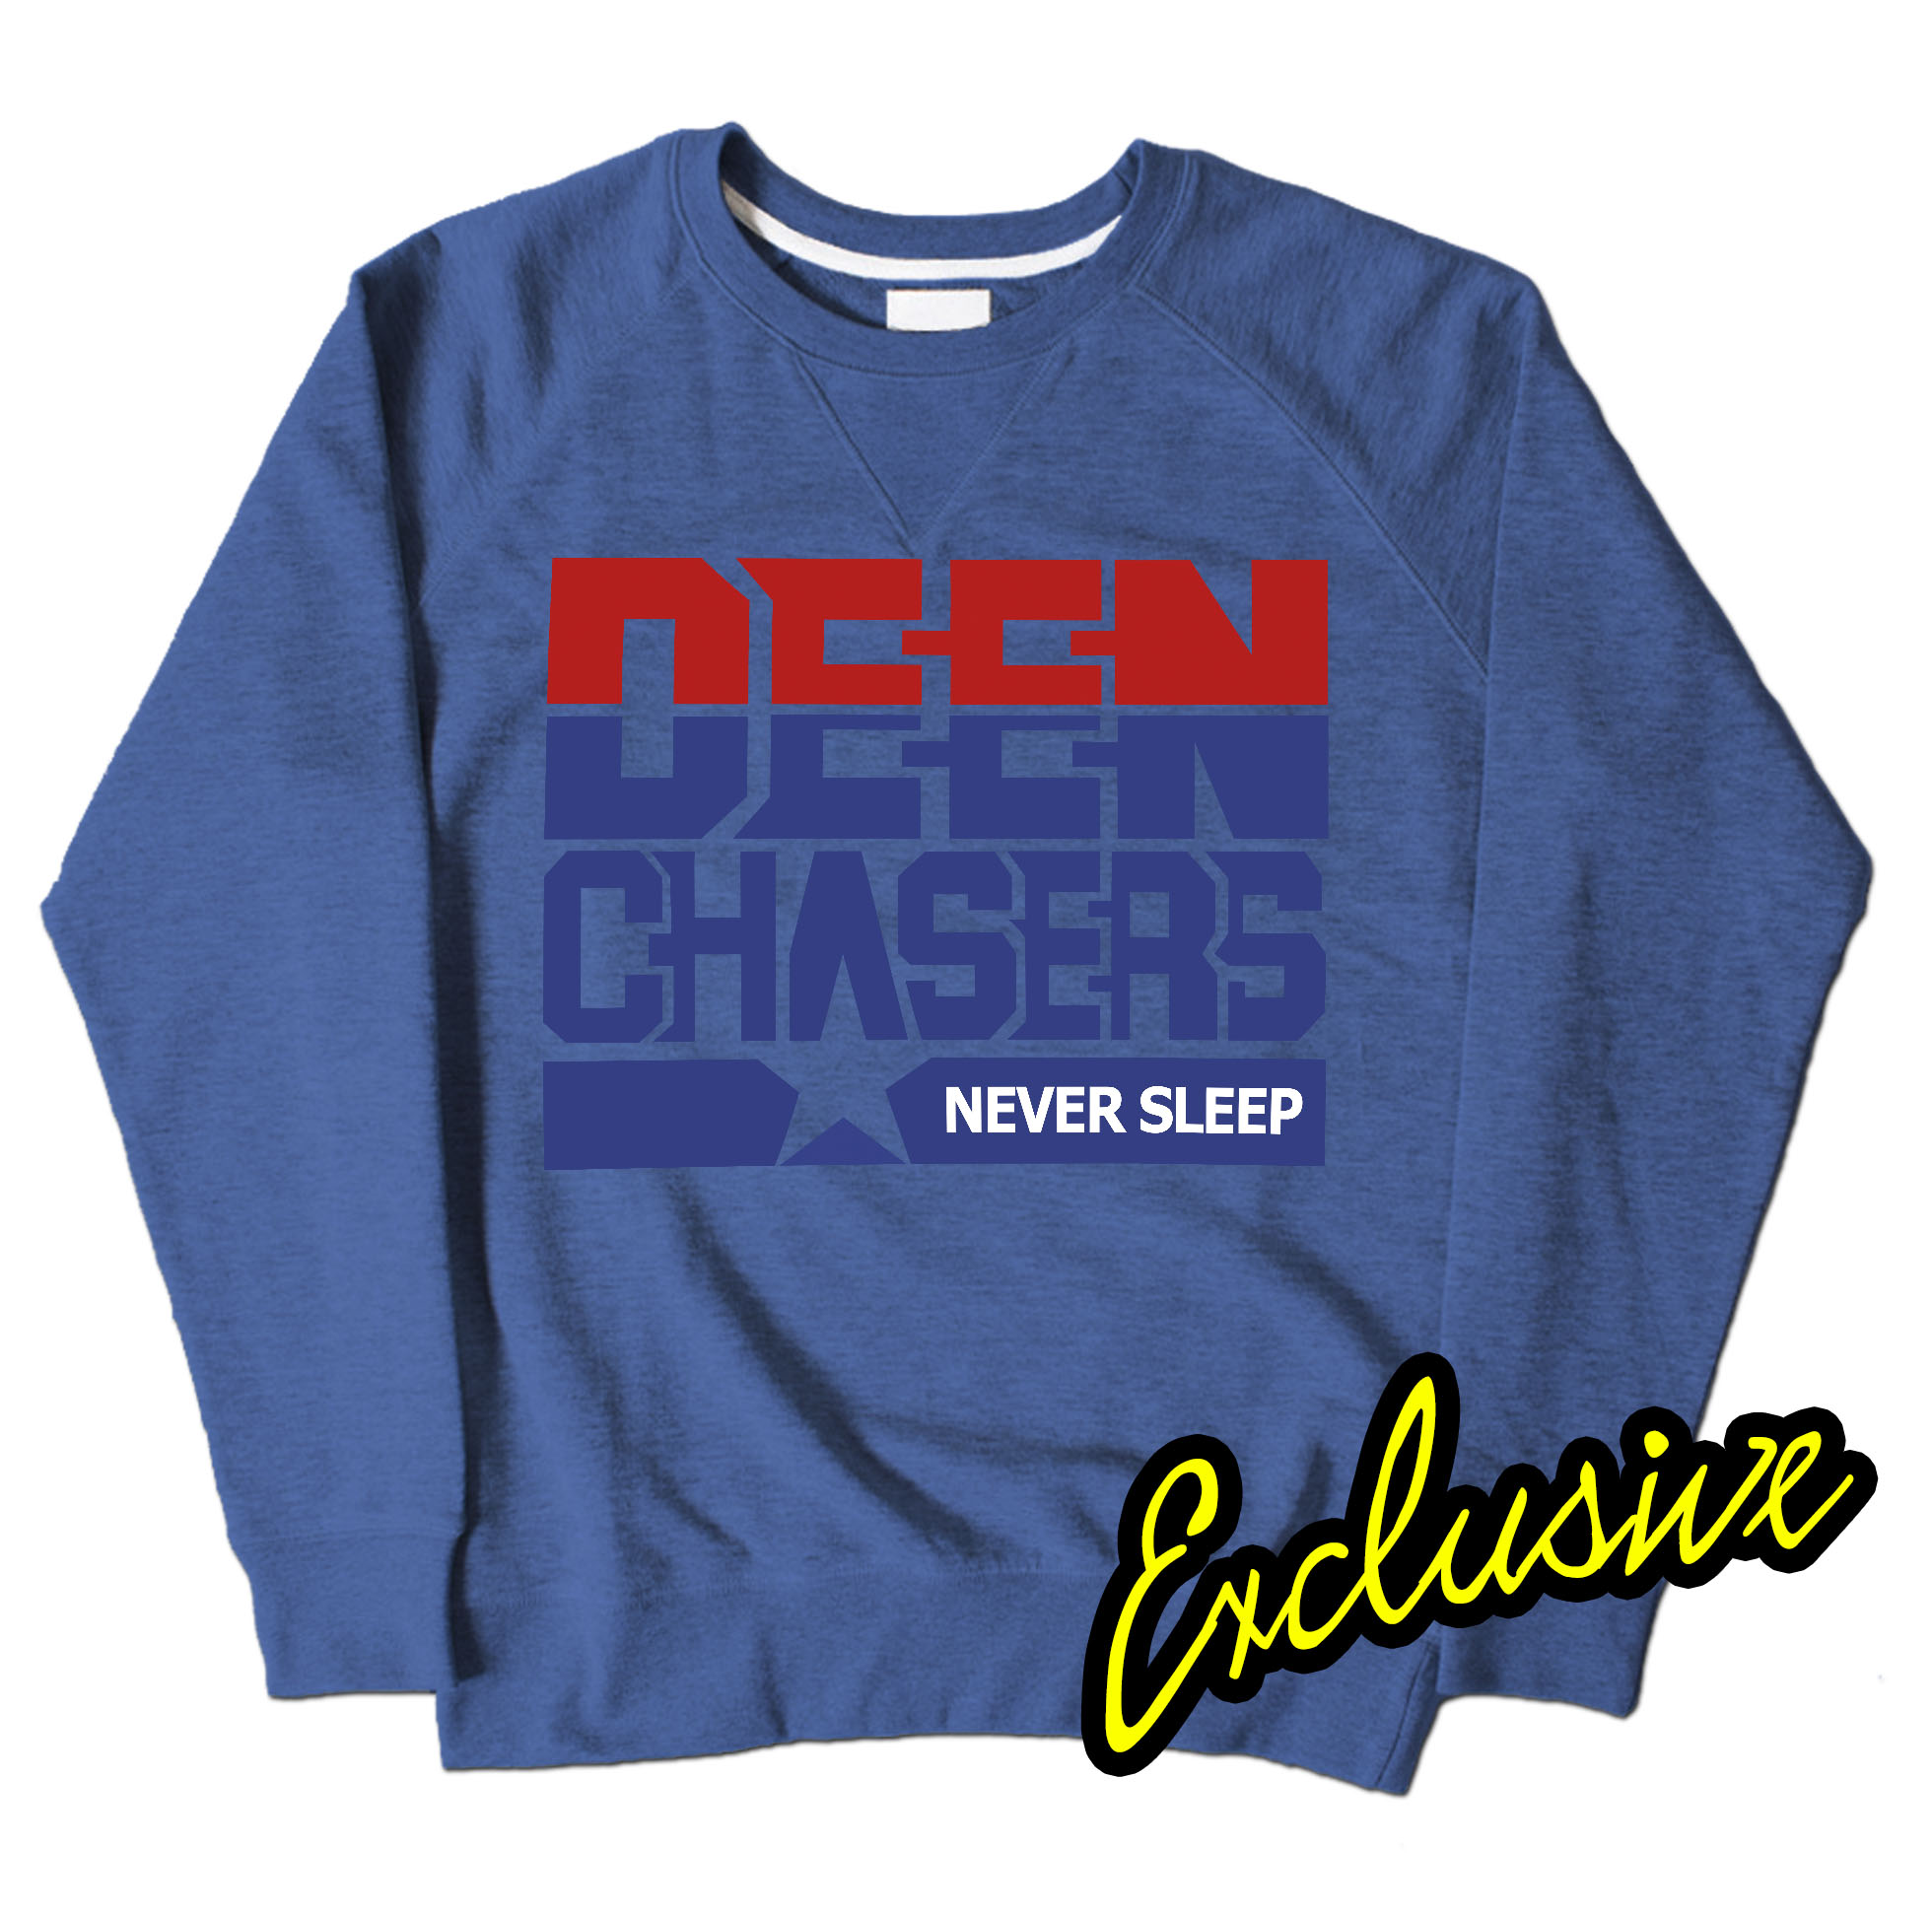 Exclusive Deen Chasers - Blue